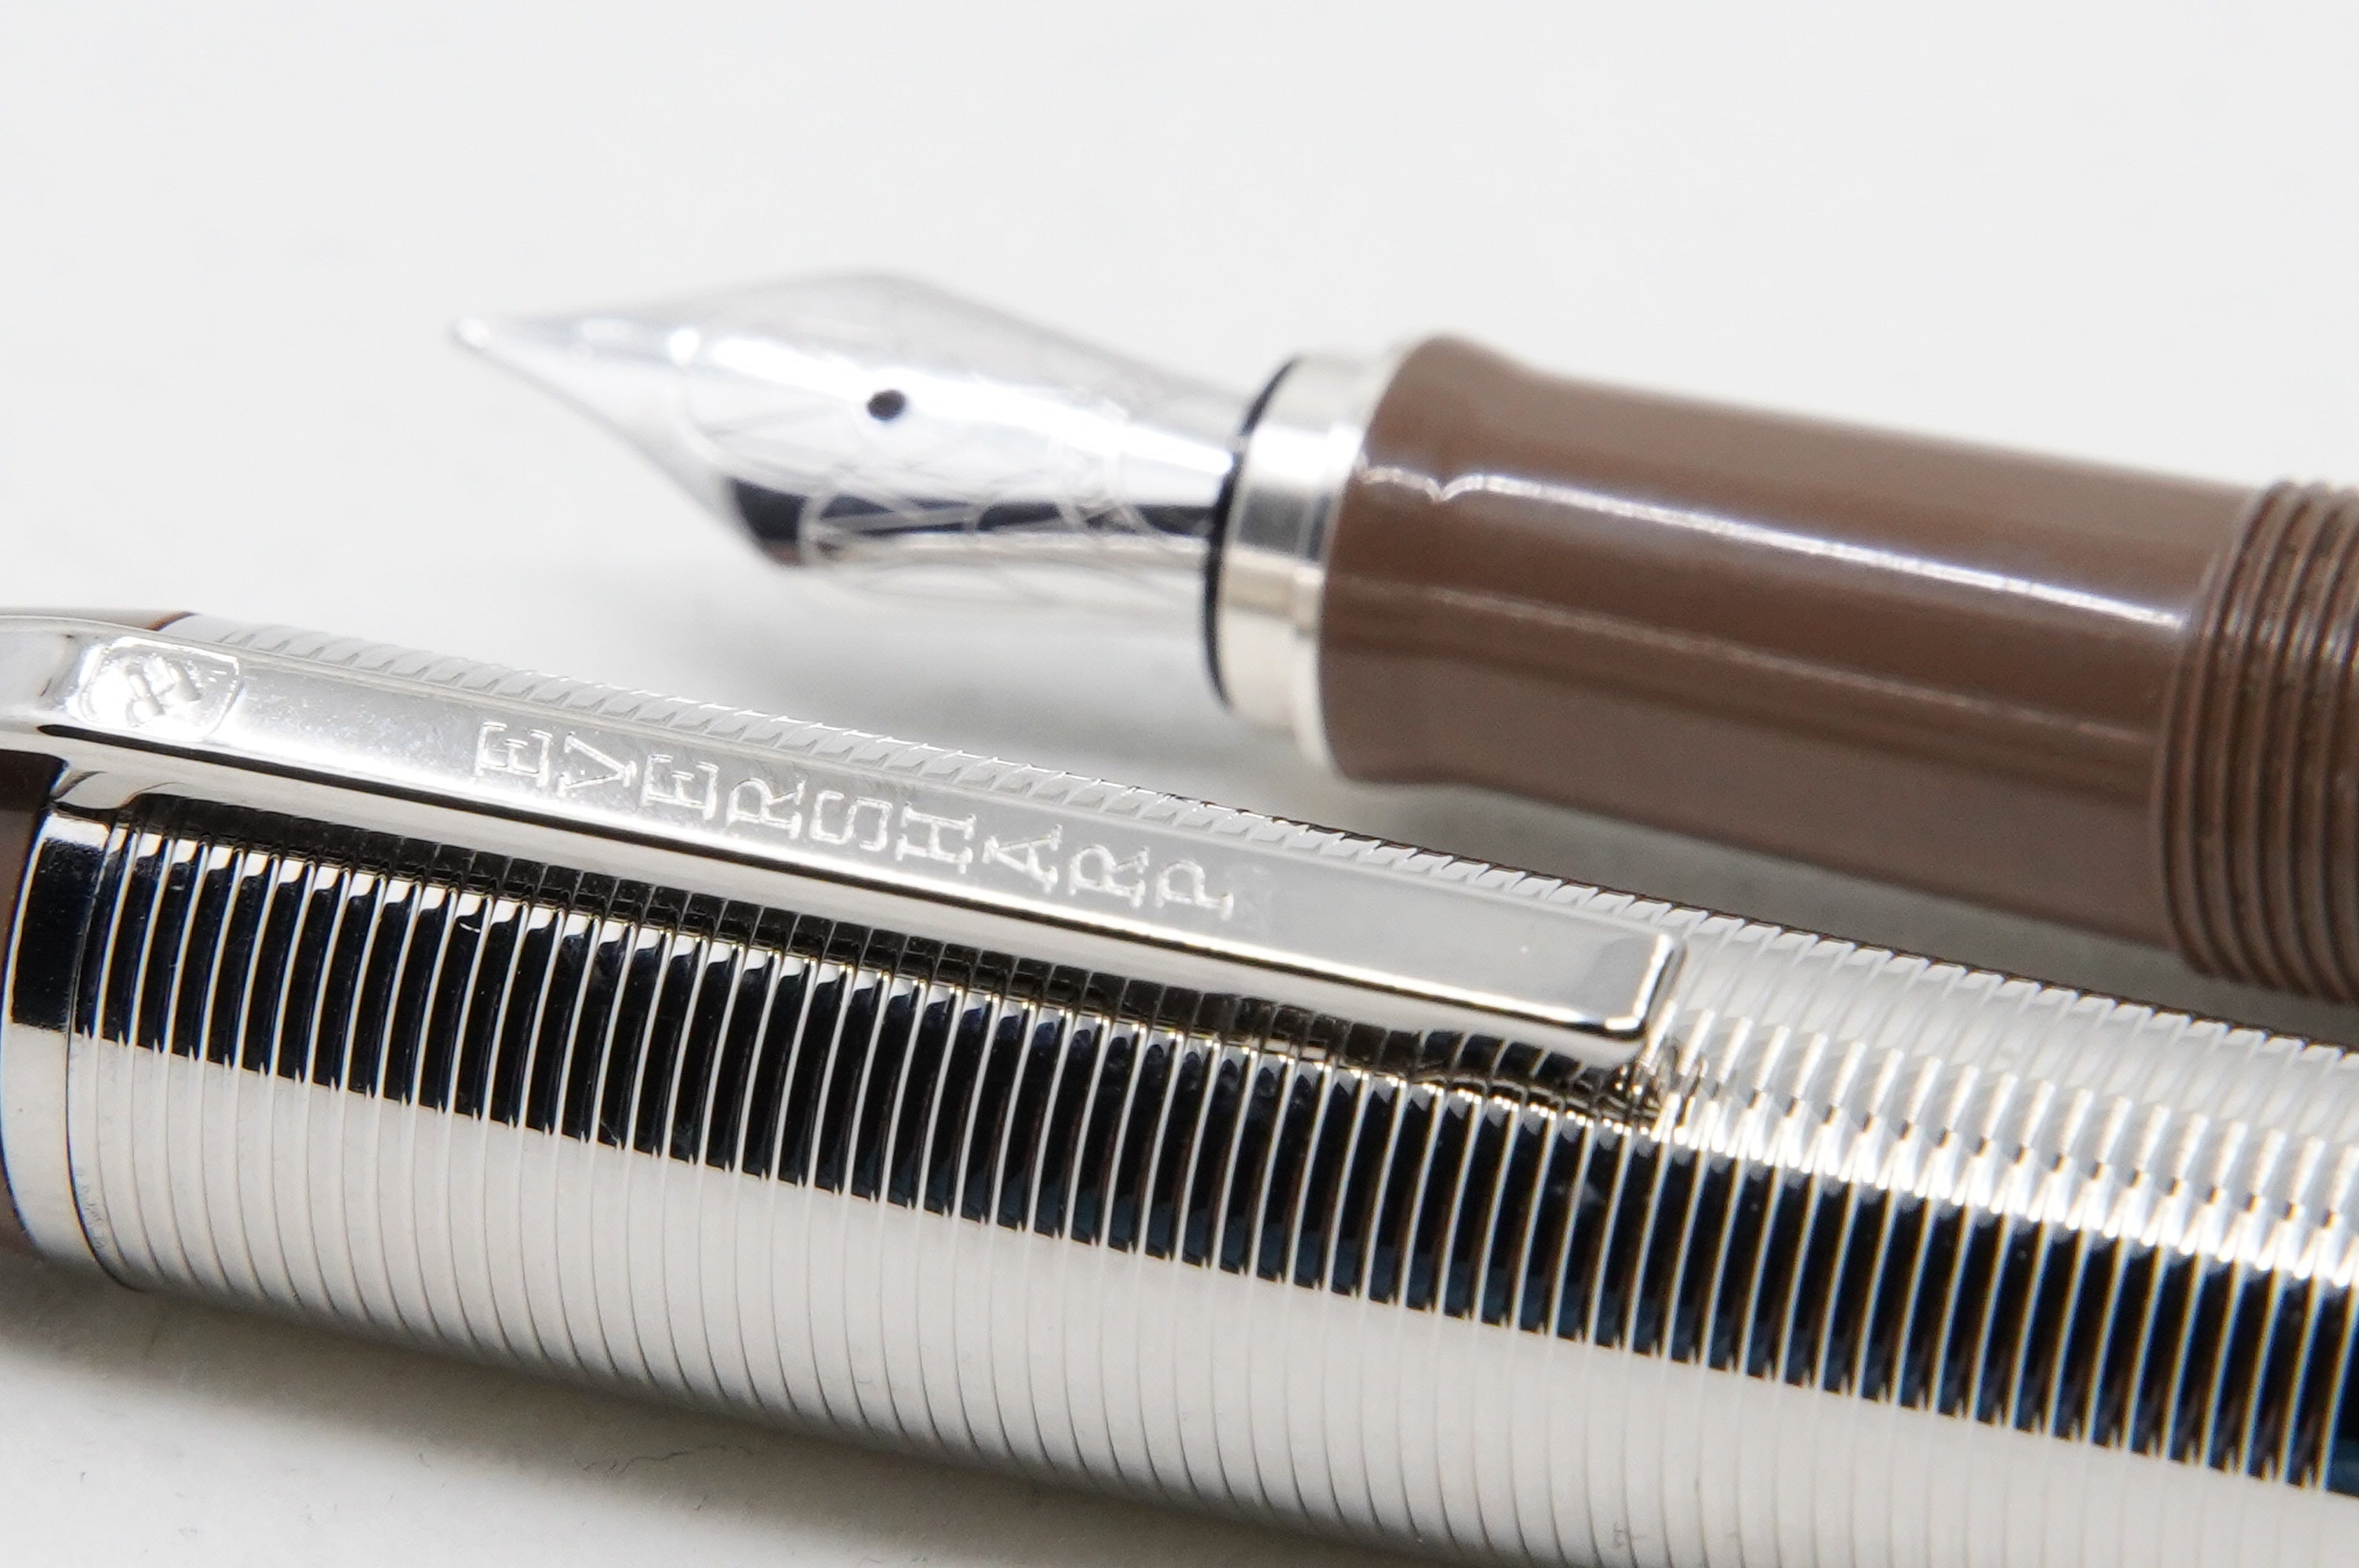 Wahl Eversharp Skyline FP Chocolate  - The iconic SKYLINE created by Henry Dreyfus in 1939